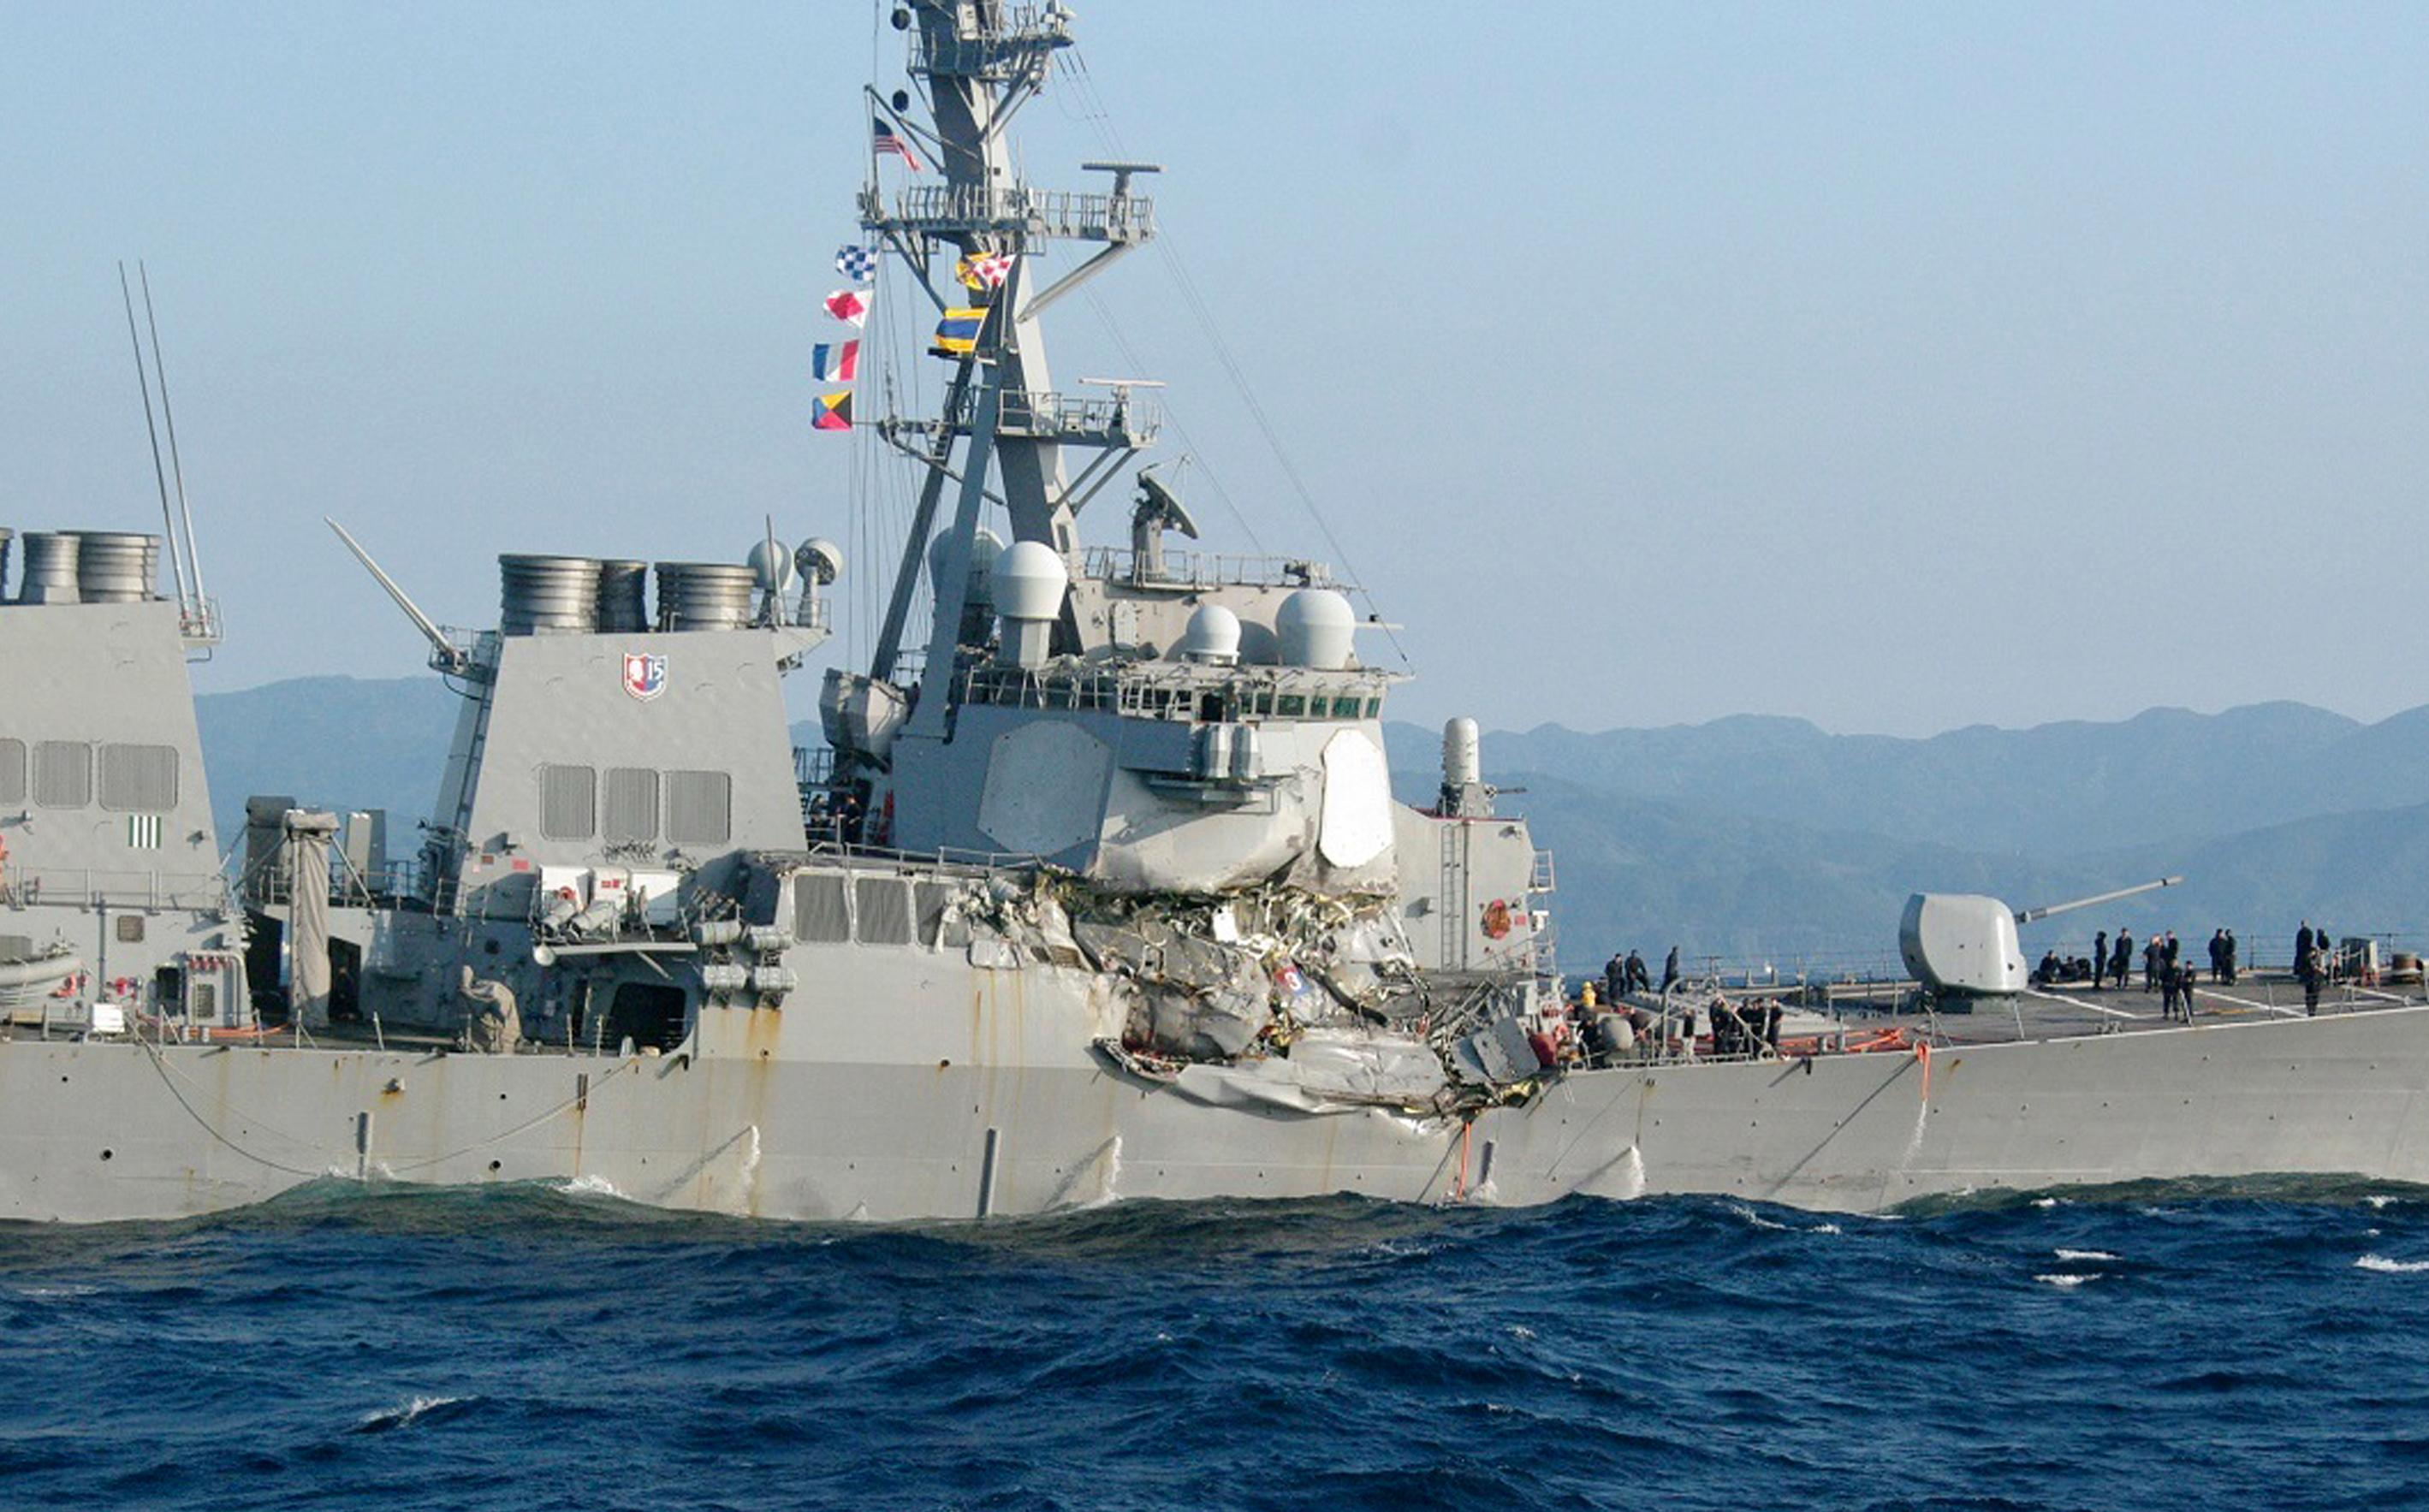 In this photo provided by Japan's 3rd Regional Coast Guard Headquarters, the USS Fitzgerald is seen off Izu Peninsula in, Japan, after the Navy destroyer collided with a merchant ship, Saturday,  June 17, 2017.  Seven Navy sailors were missing and at least two, including the captain, were injured after the U.S. destroyer collided with a merchant ship off the coast of Japan before dawn Saturday, the U.S. Navy and Japanese coast guard reported. (Japan's 3rd Regional Coast Guard Headquarters via AP)